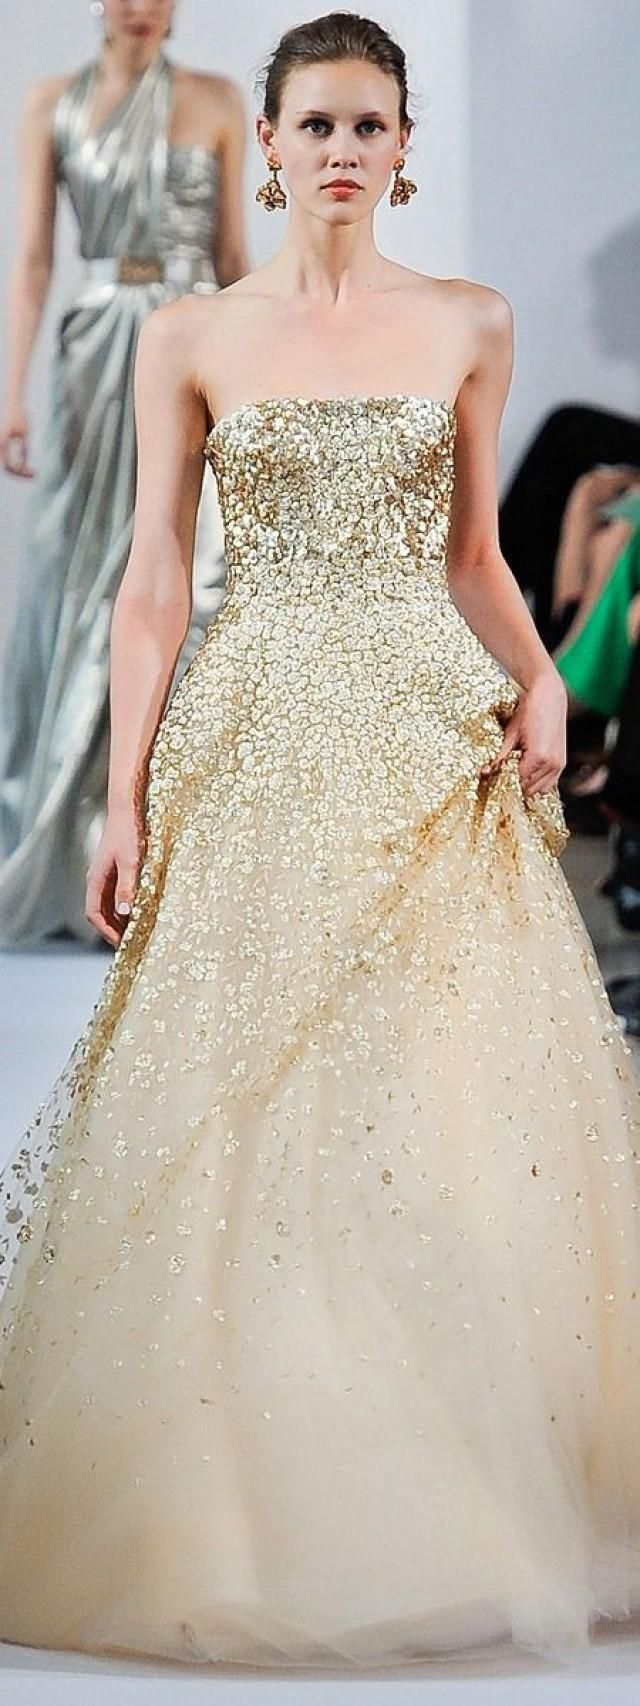 Oscar de la Renta Resort 2013 gold and white gown | Inspirations for ...